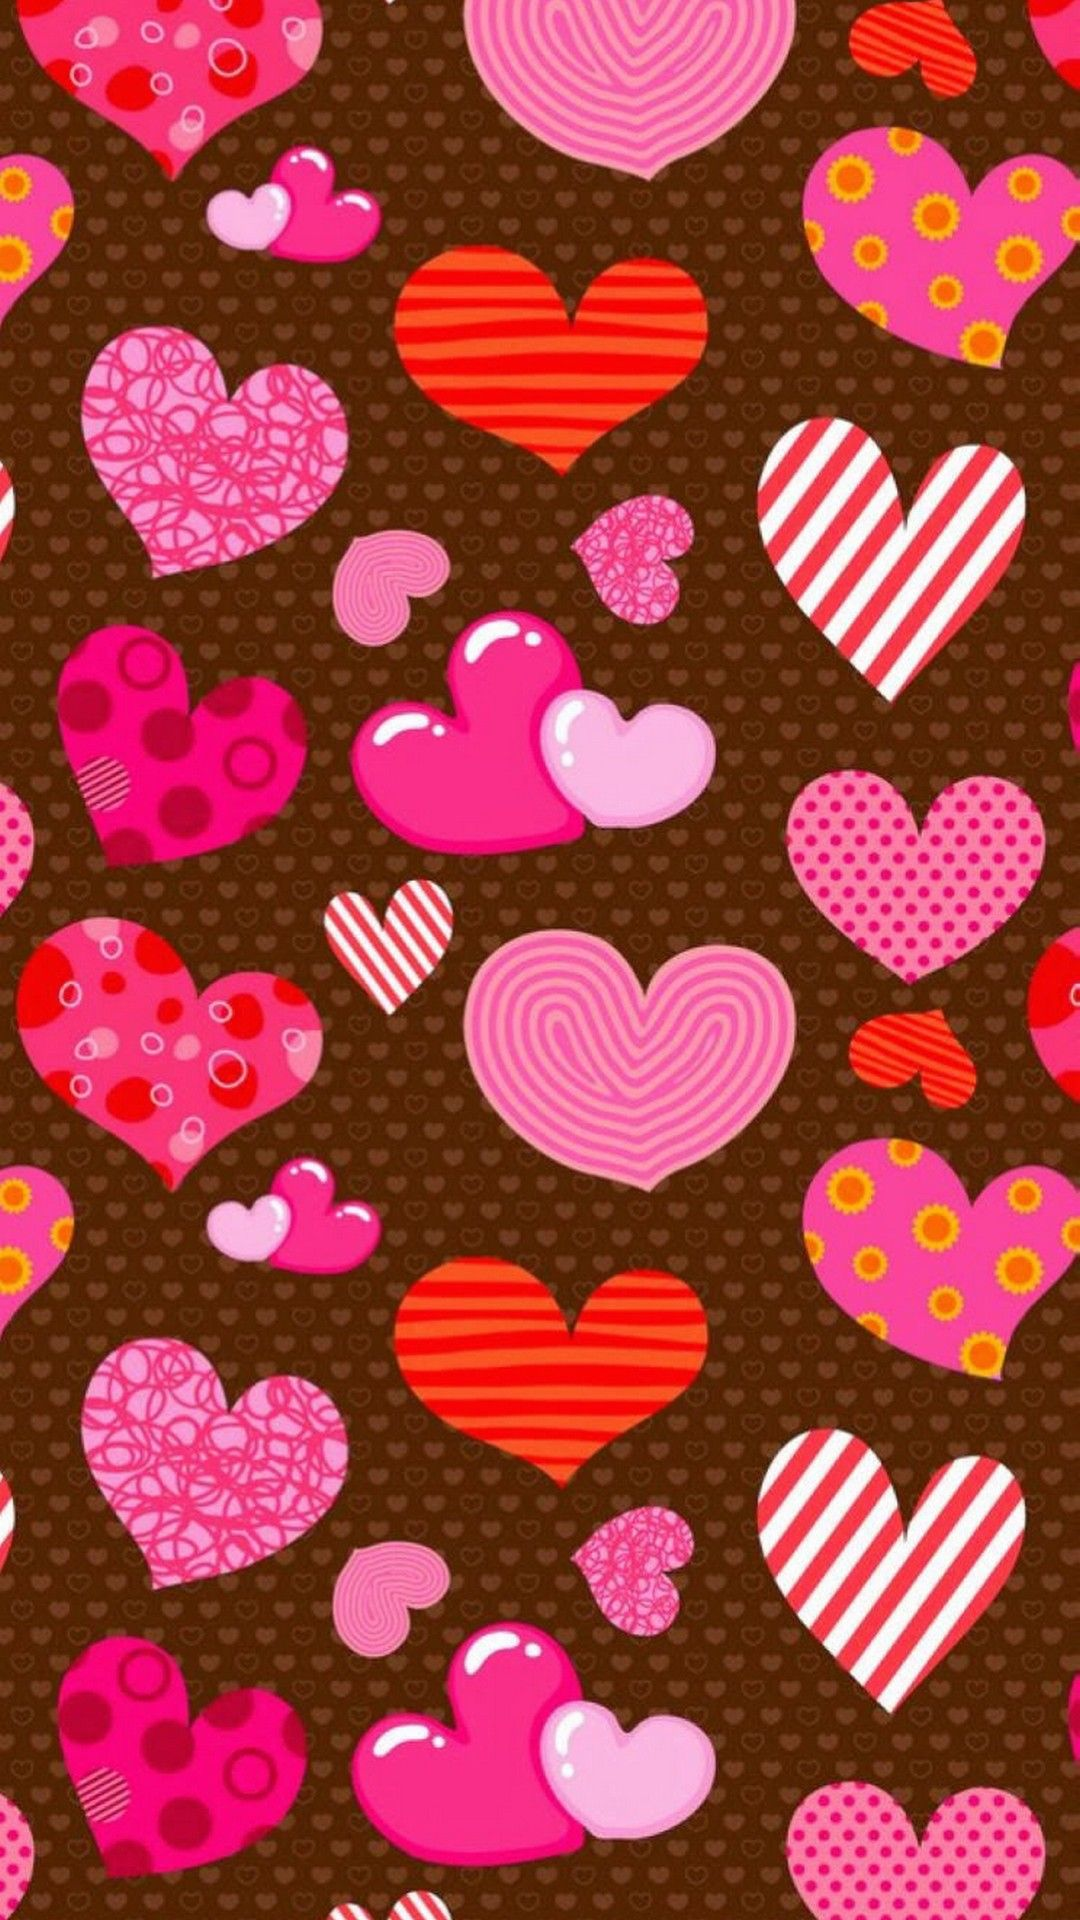 Wallpaper Happy Valentines Day Iphone 2018 Iphone Wallpapers